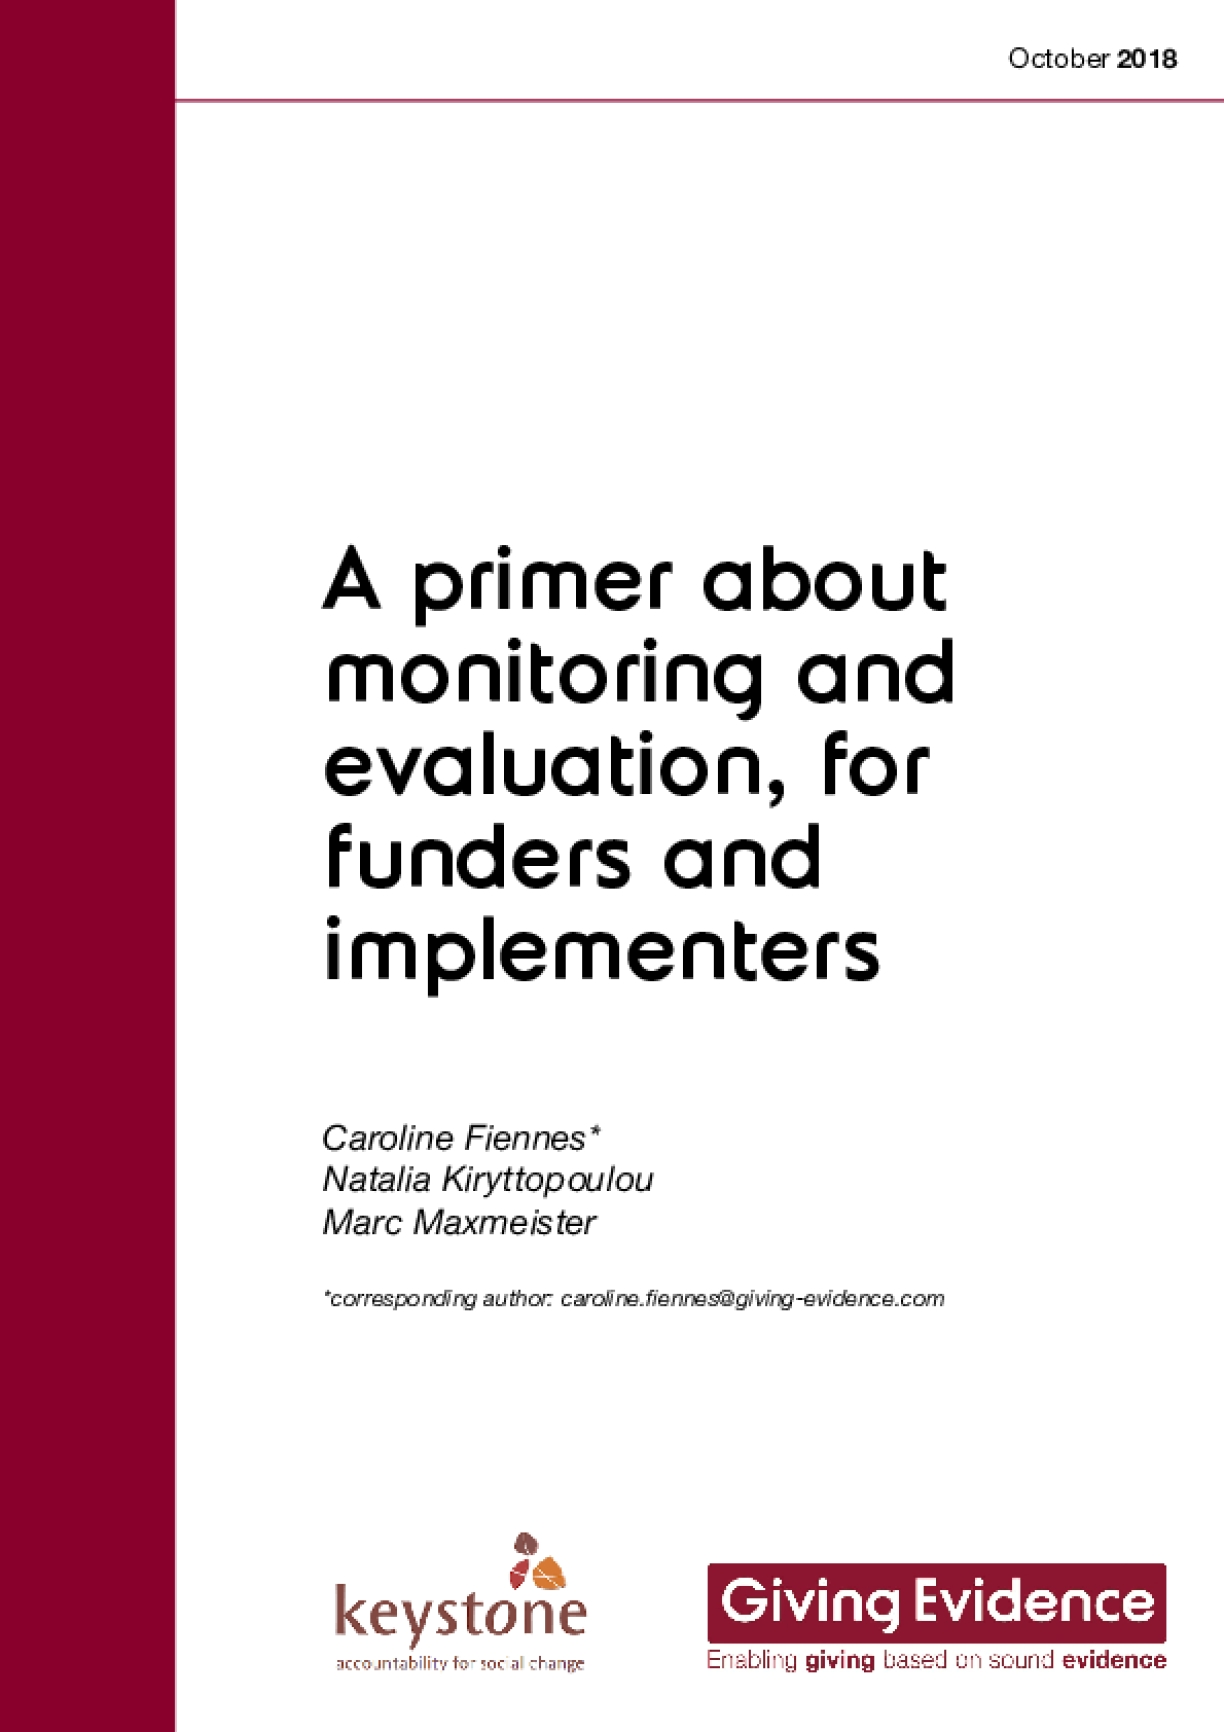 A Primer About Monitoring and Evaluation, for Funders and Implementers